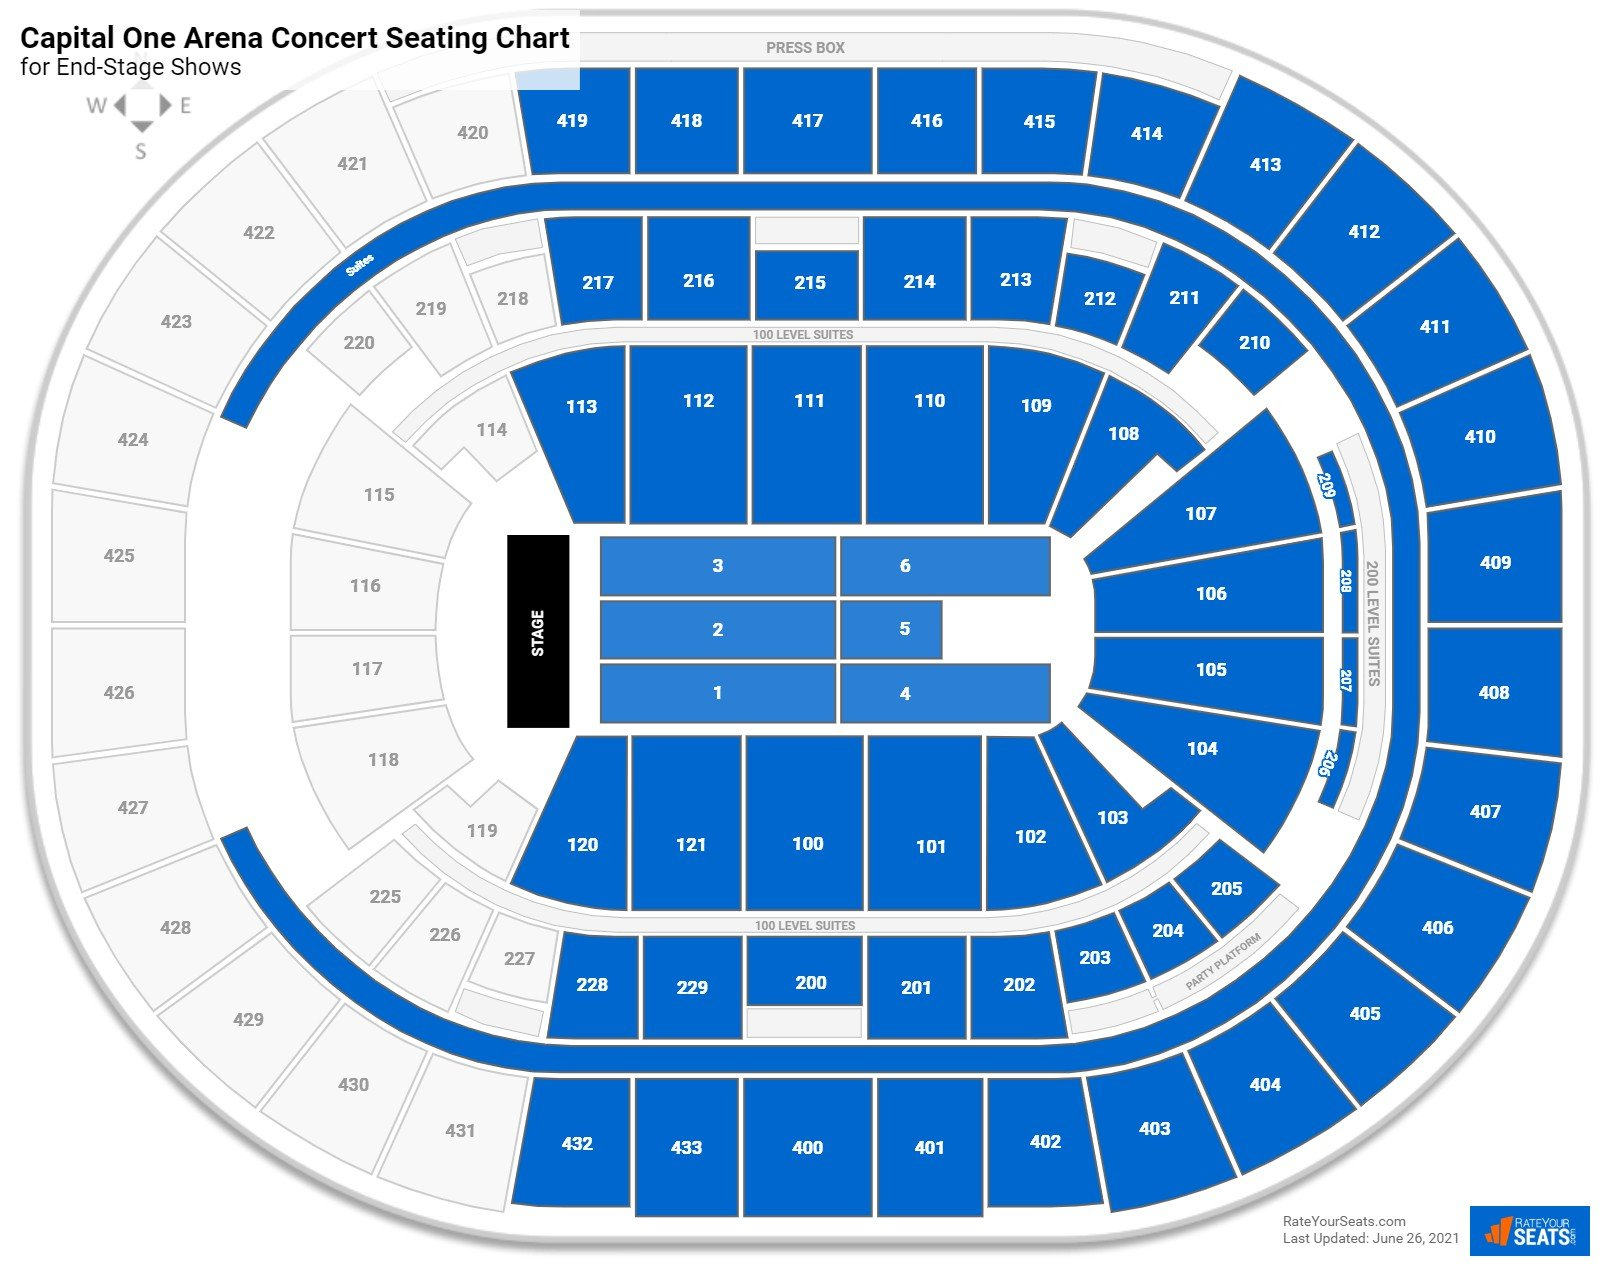 Capital One Arena Seating Charts For Concerts Rateyourseats Com